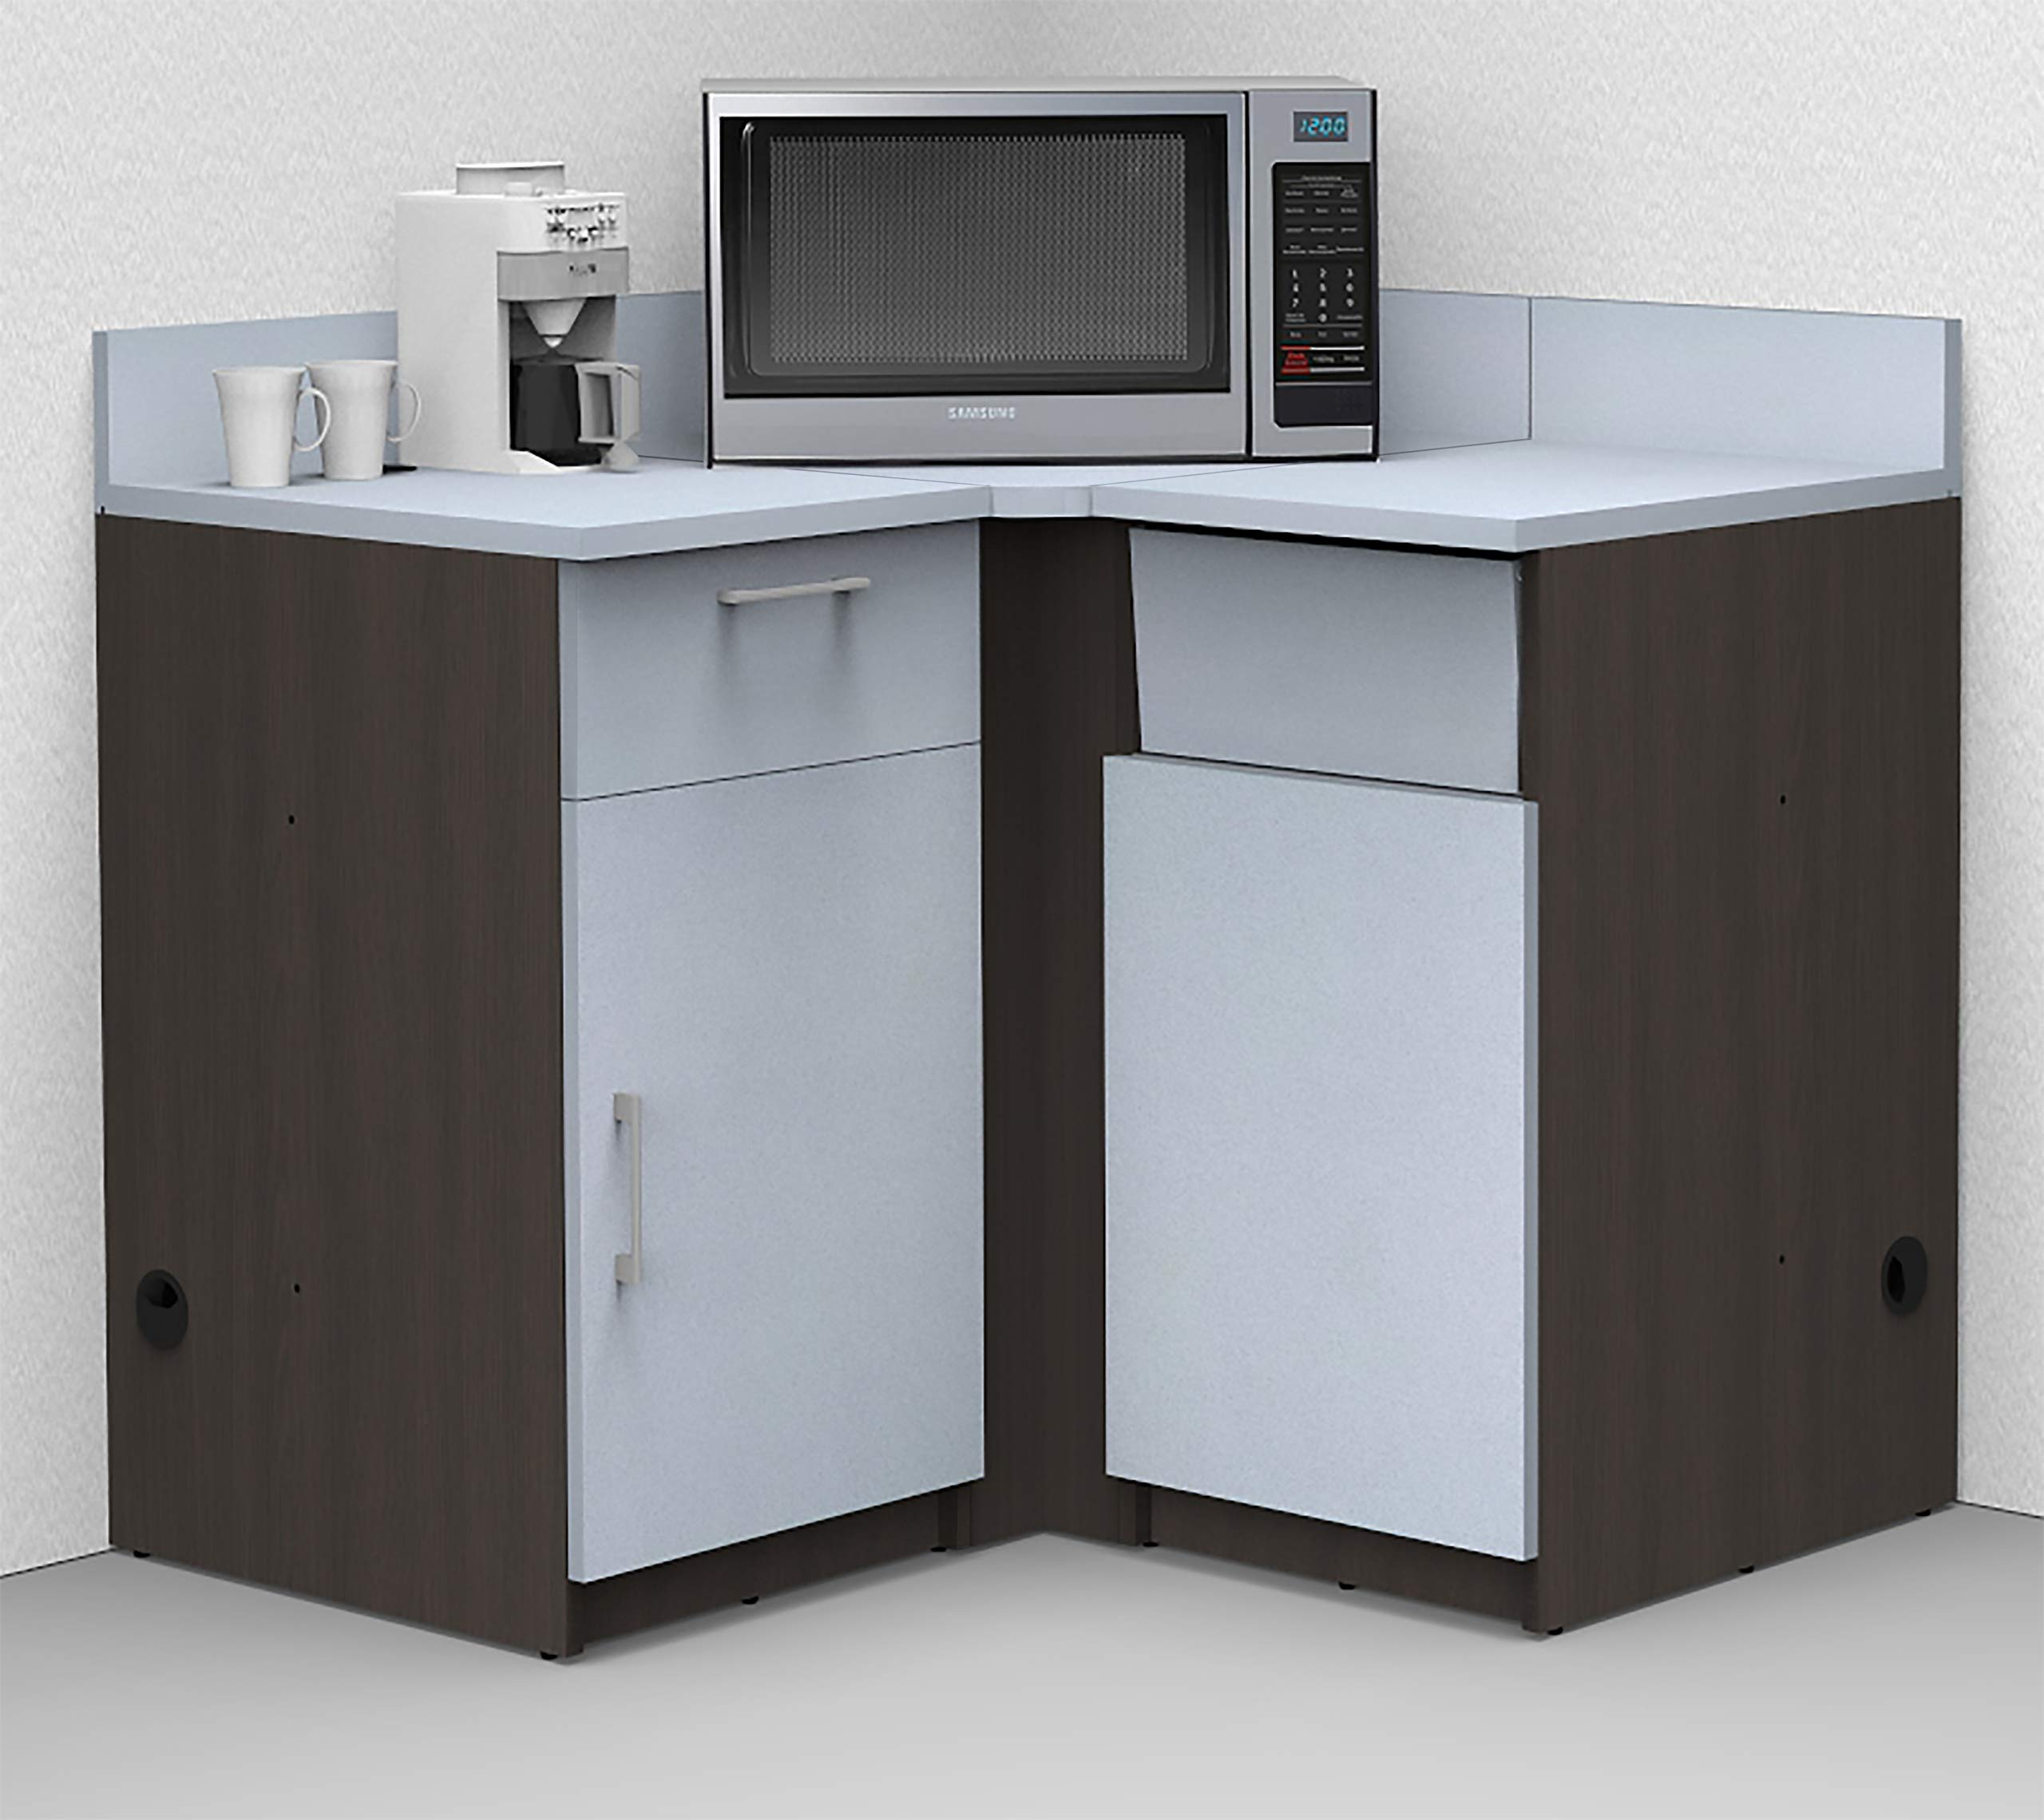 Coffee Kitchen Lunch Break Room Corner Space Saver Model 5976 BREAKTIME 3 Piece Color Espresso/Silver - Fully Factory Assembled. Purchase is Furniture Items ONLY. by Breaktime